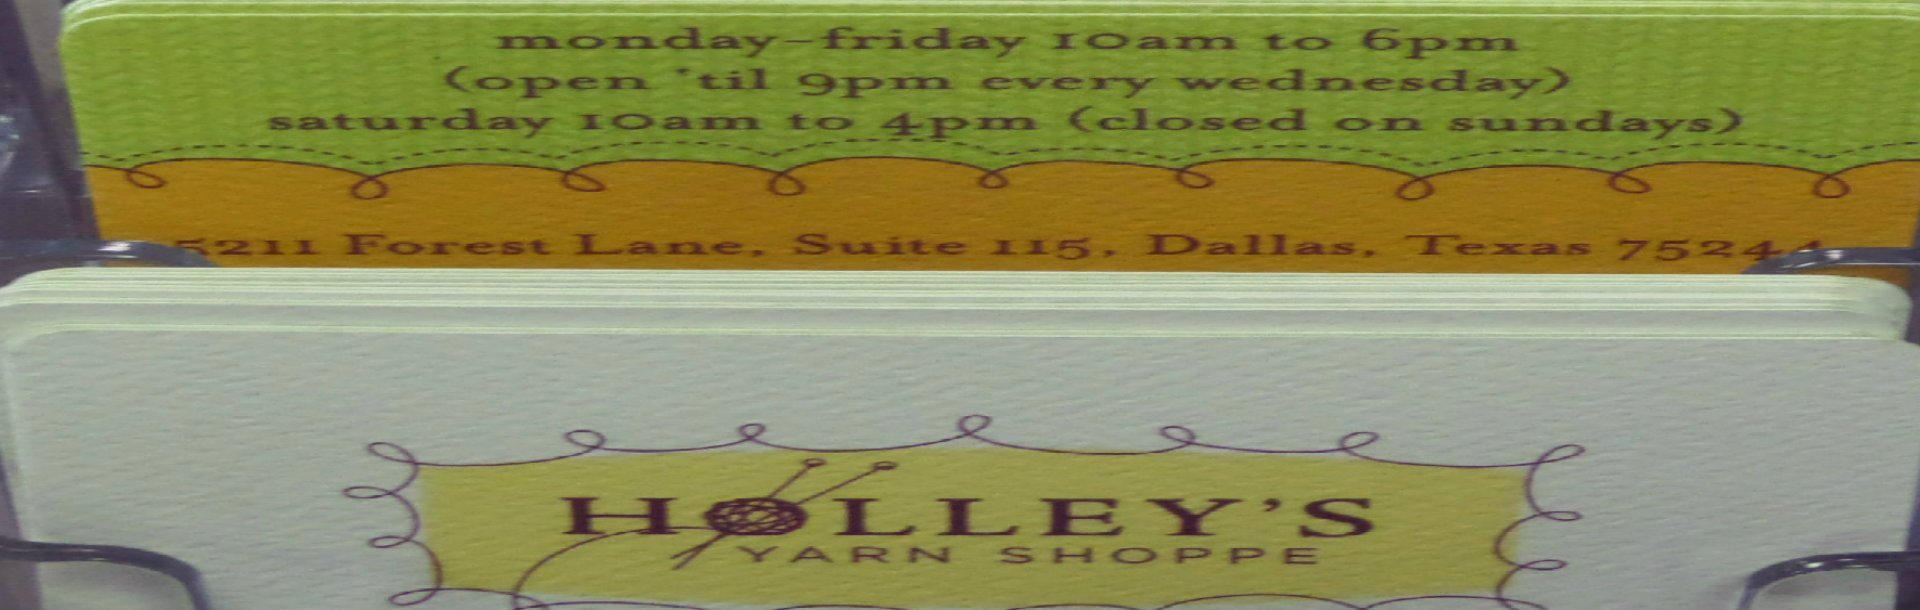 Holley's Yarn Shoppe | North Dallas | Texas